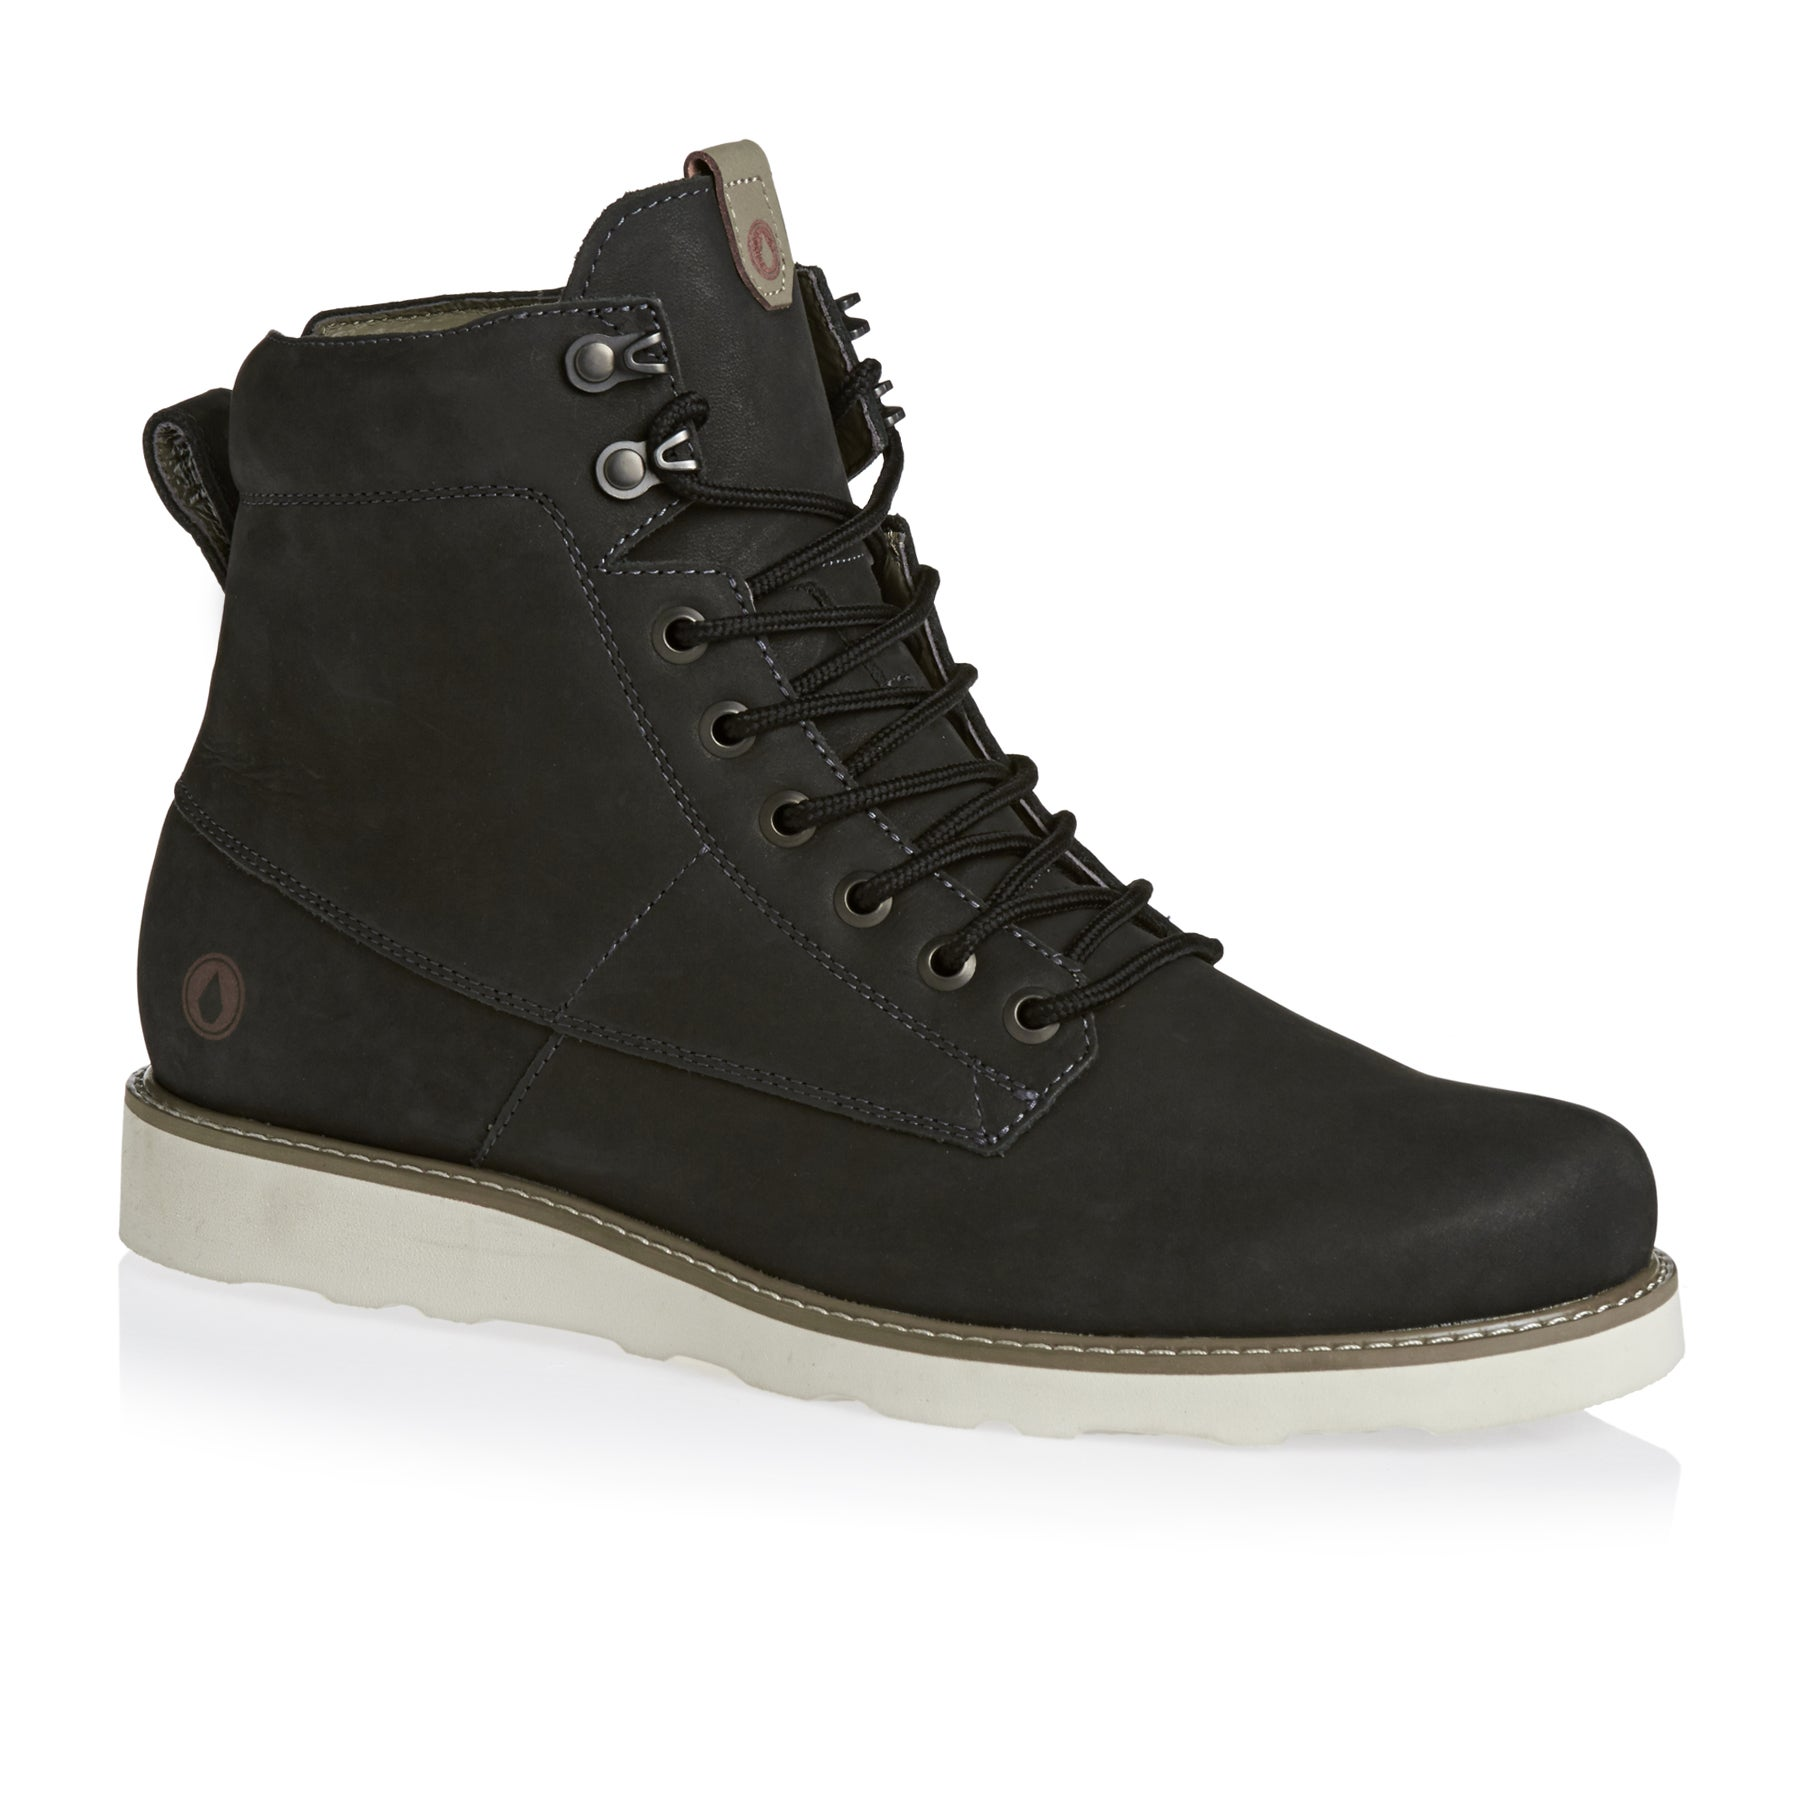 be4427701c9 Volcom Smithington II Boots available from Surfdome